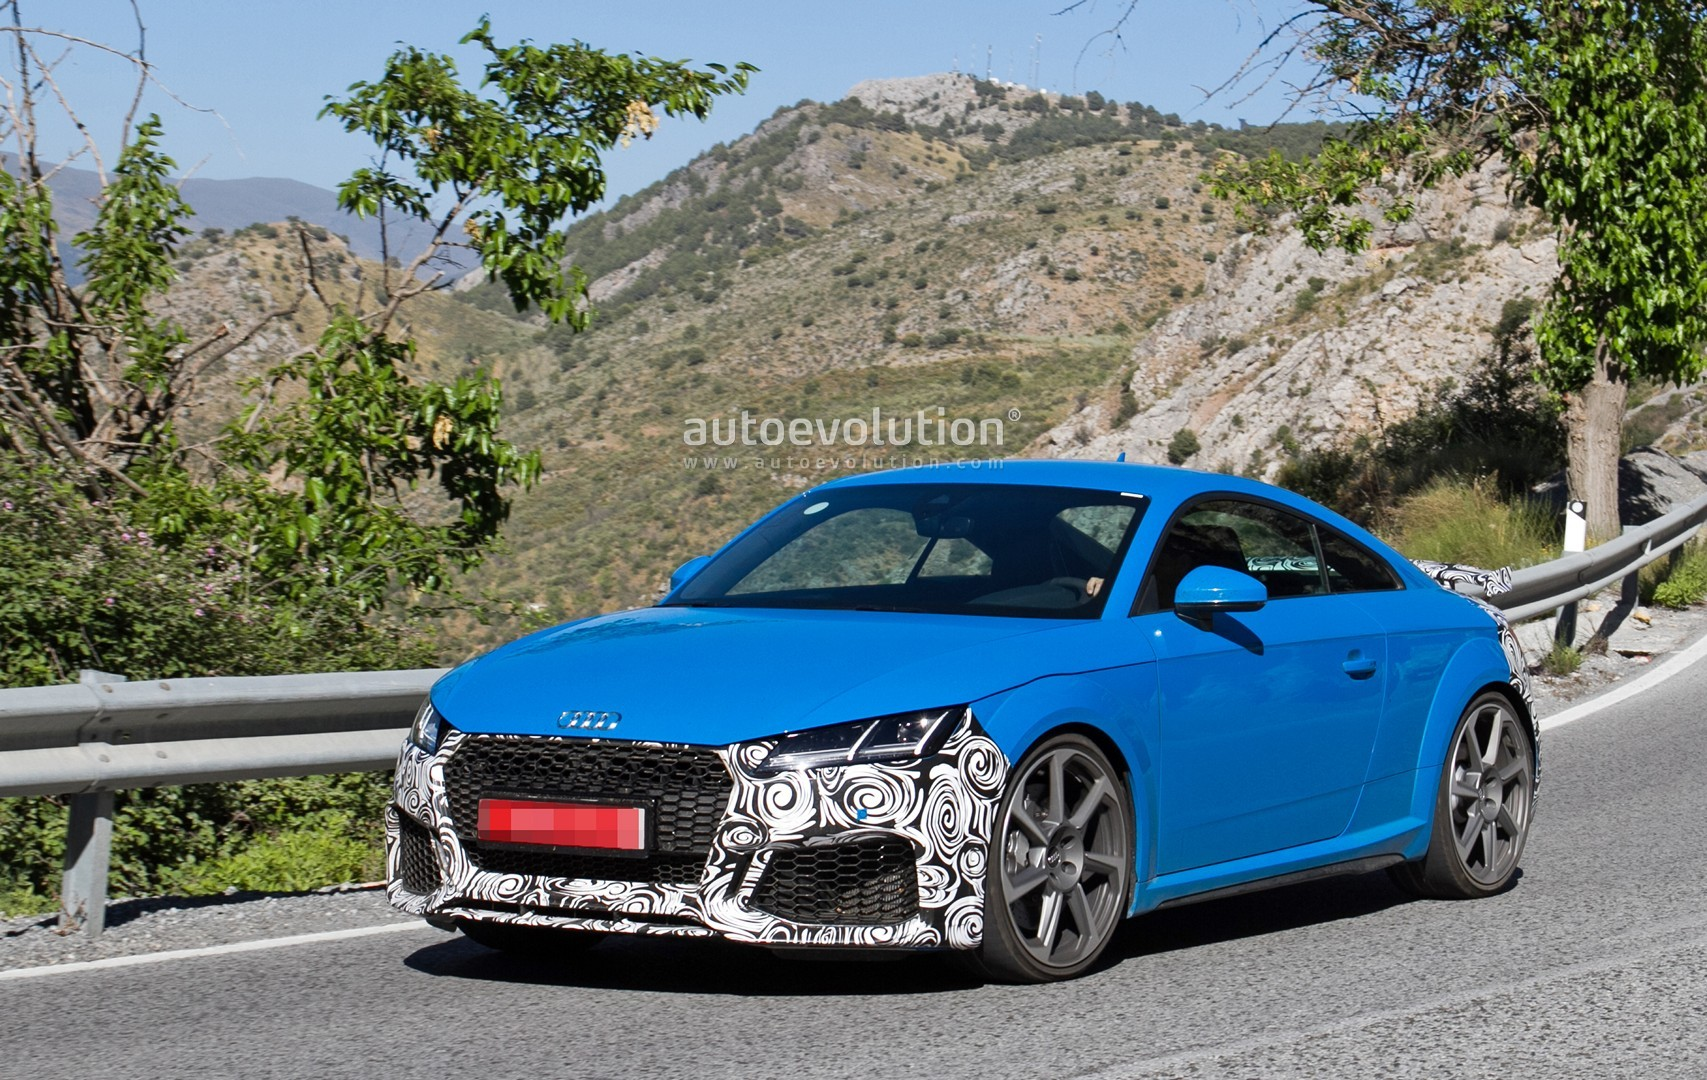 2019 Audi TT RS Spied With New RS Look and Fresh Blue ...